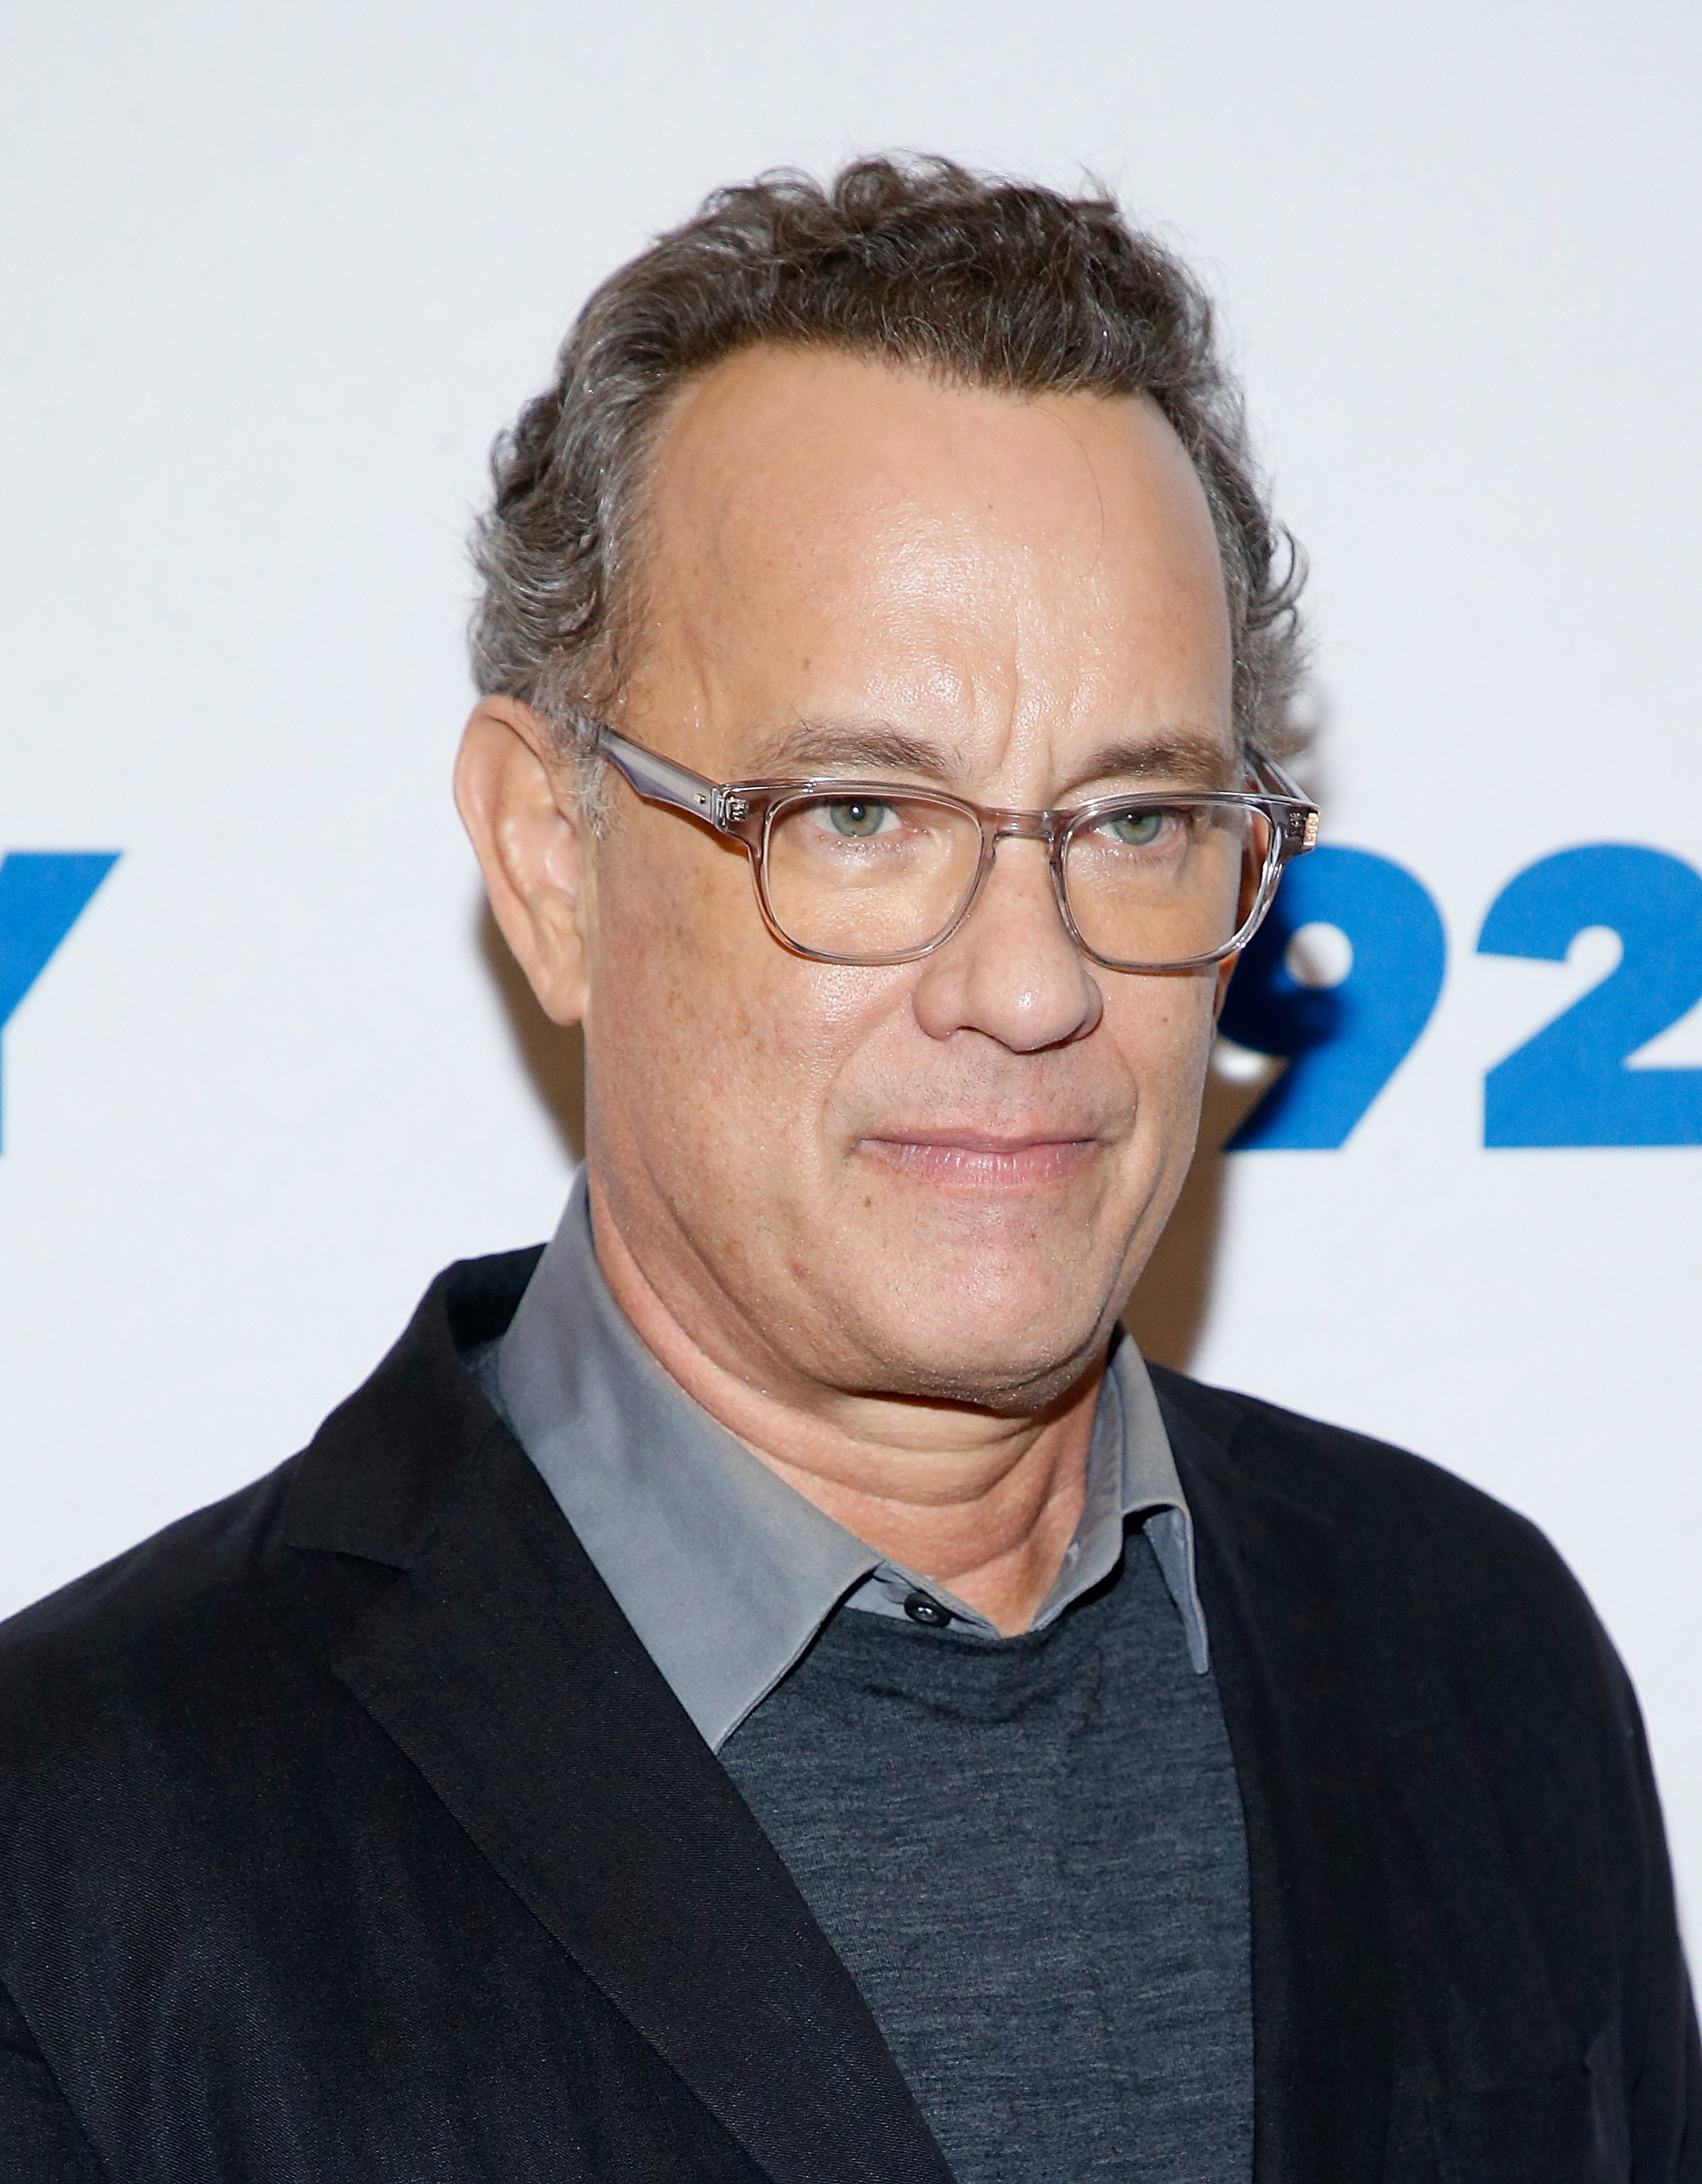 Tom Hanks poses before a conversation with Gayle King at 92nd Street Y on November 1, 2018, in New York City. | Source: Getty Images.